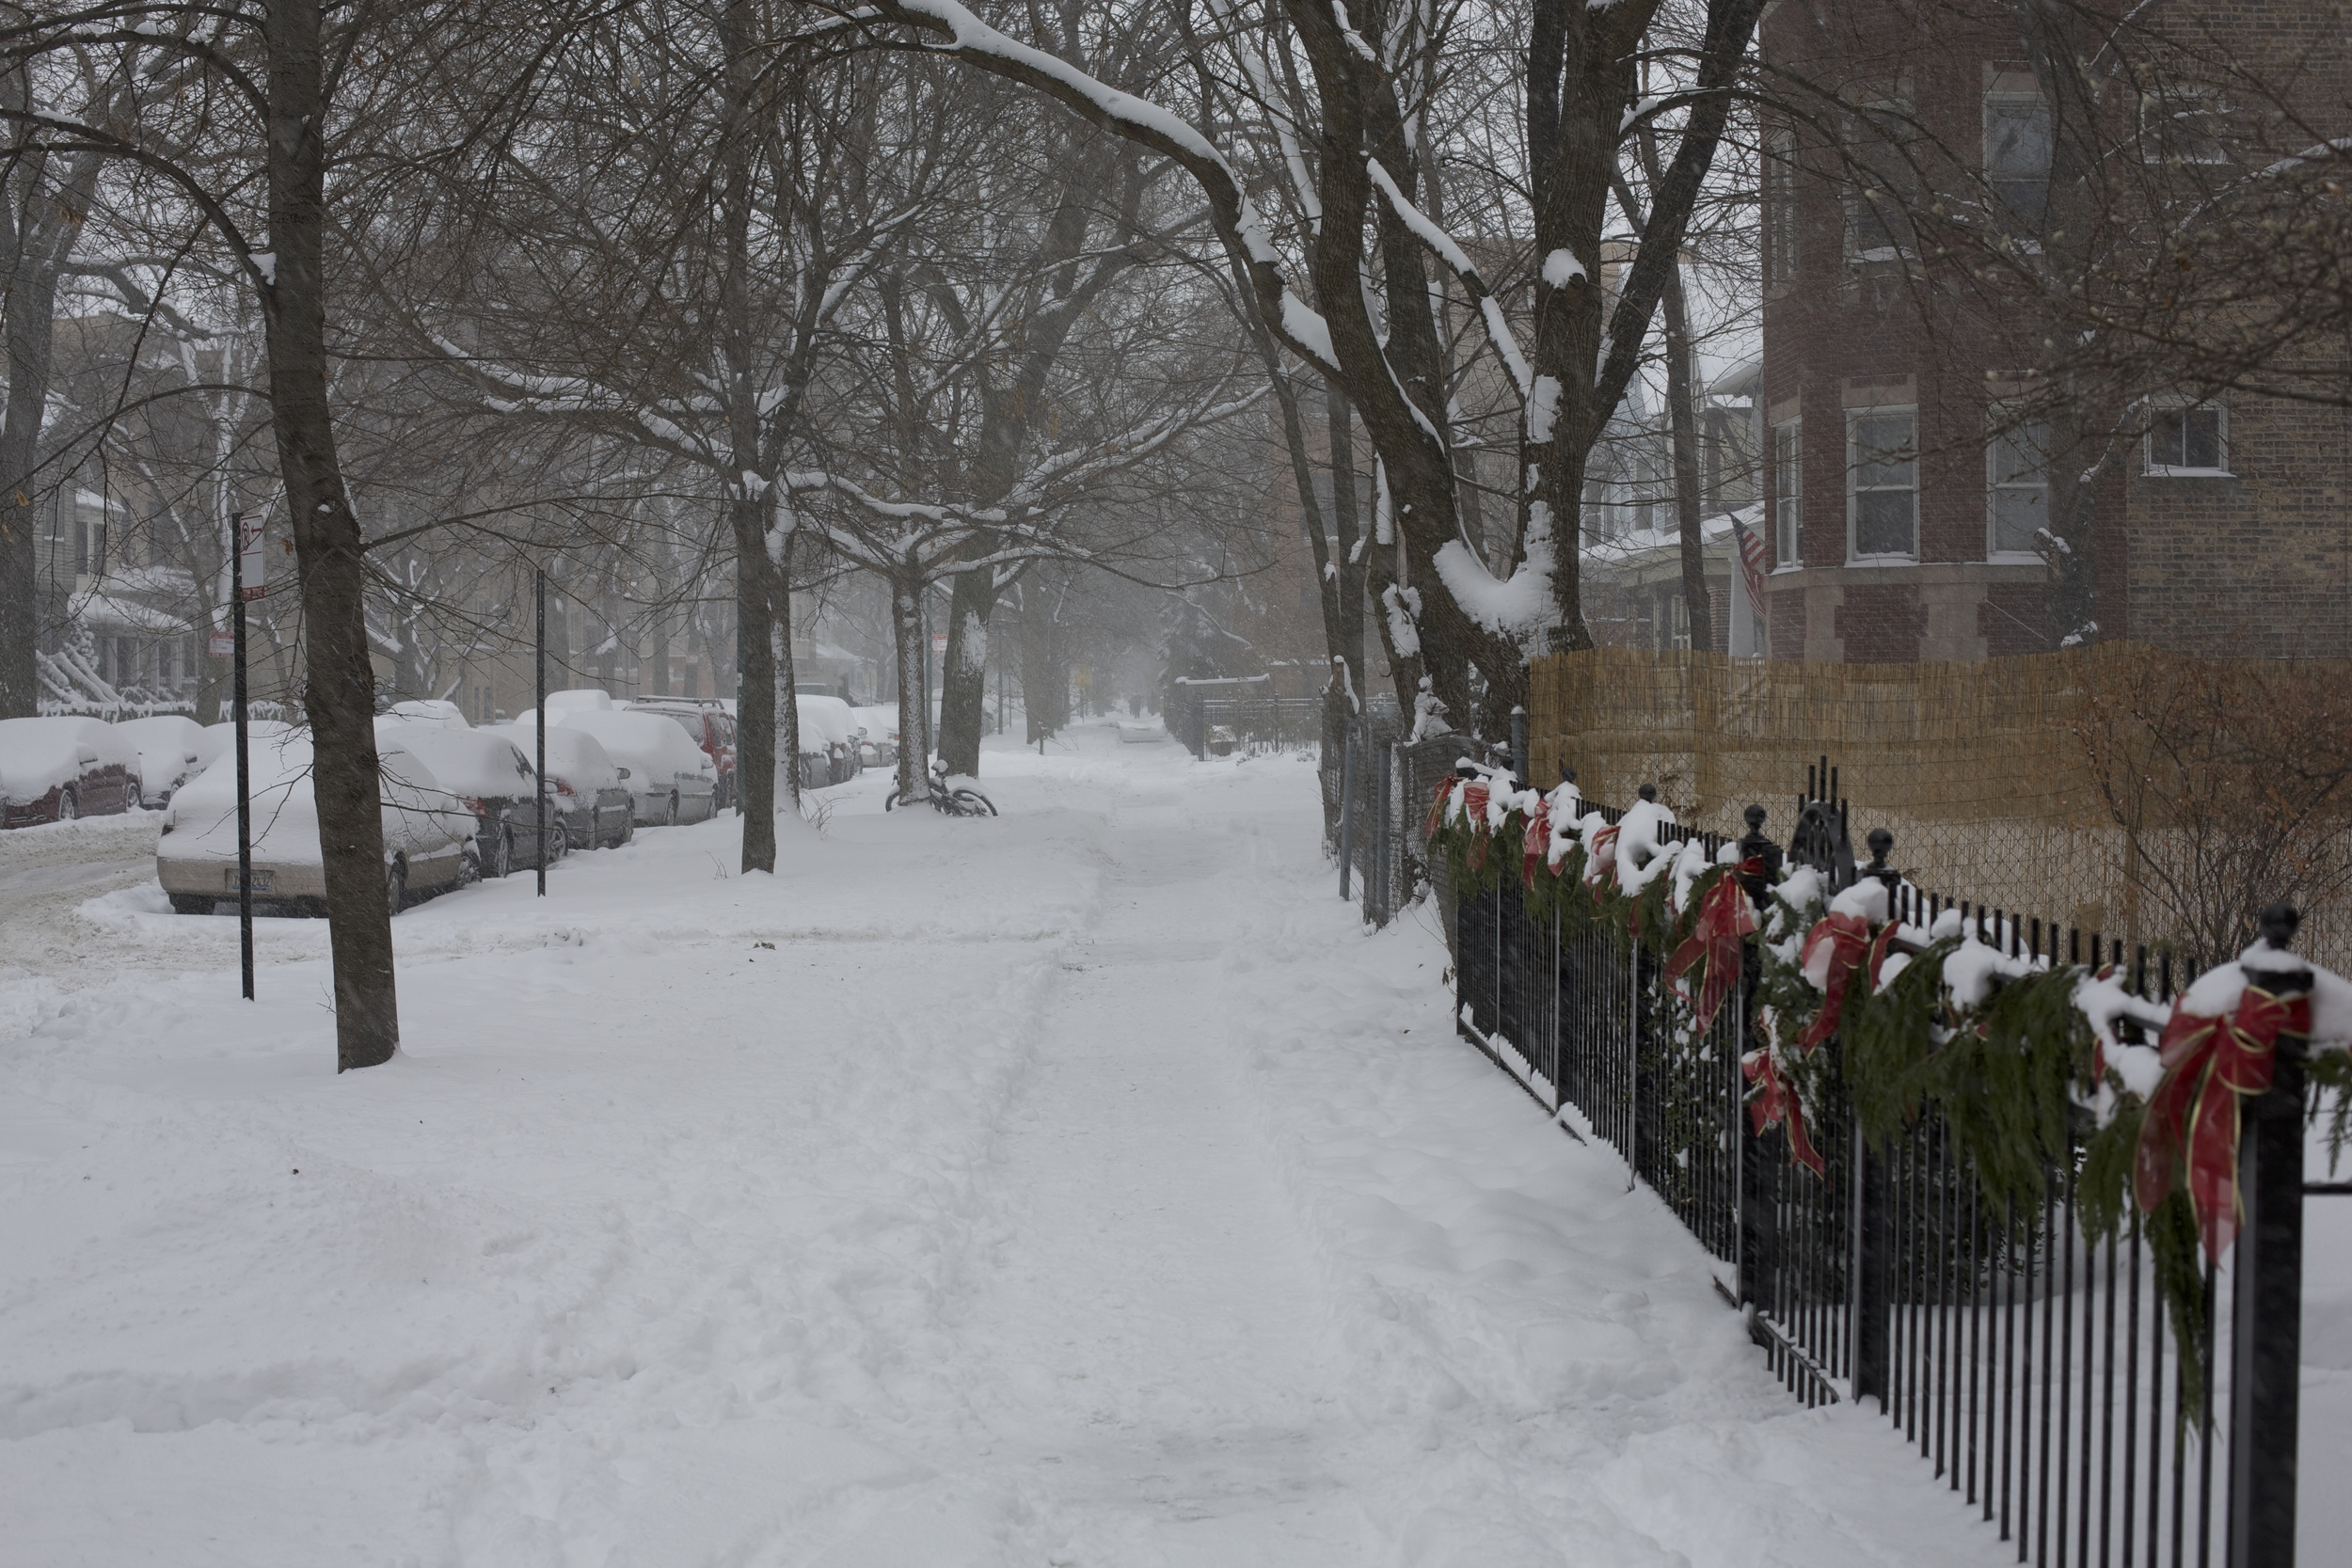 The Sidewalks were barely visible, even though they had been shoveled multiple times